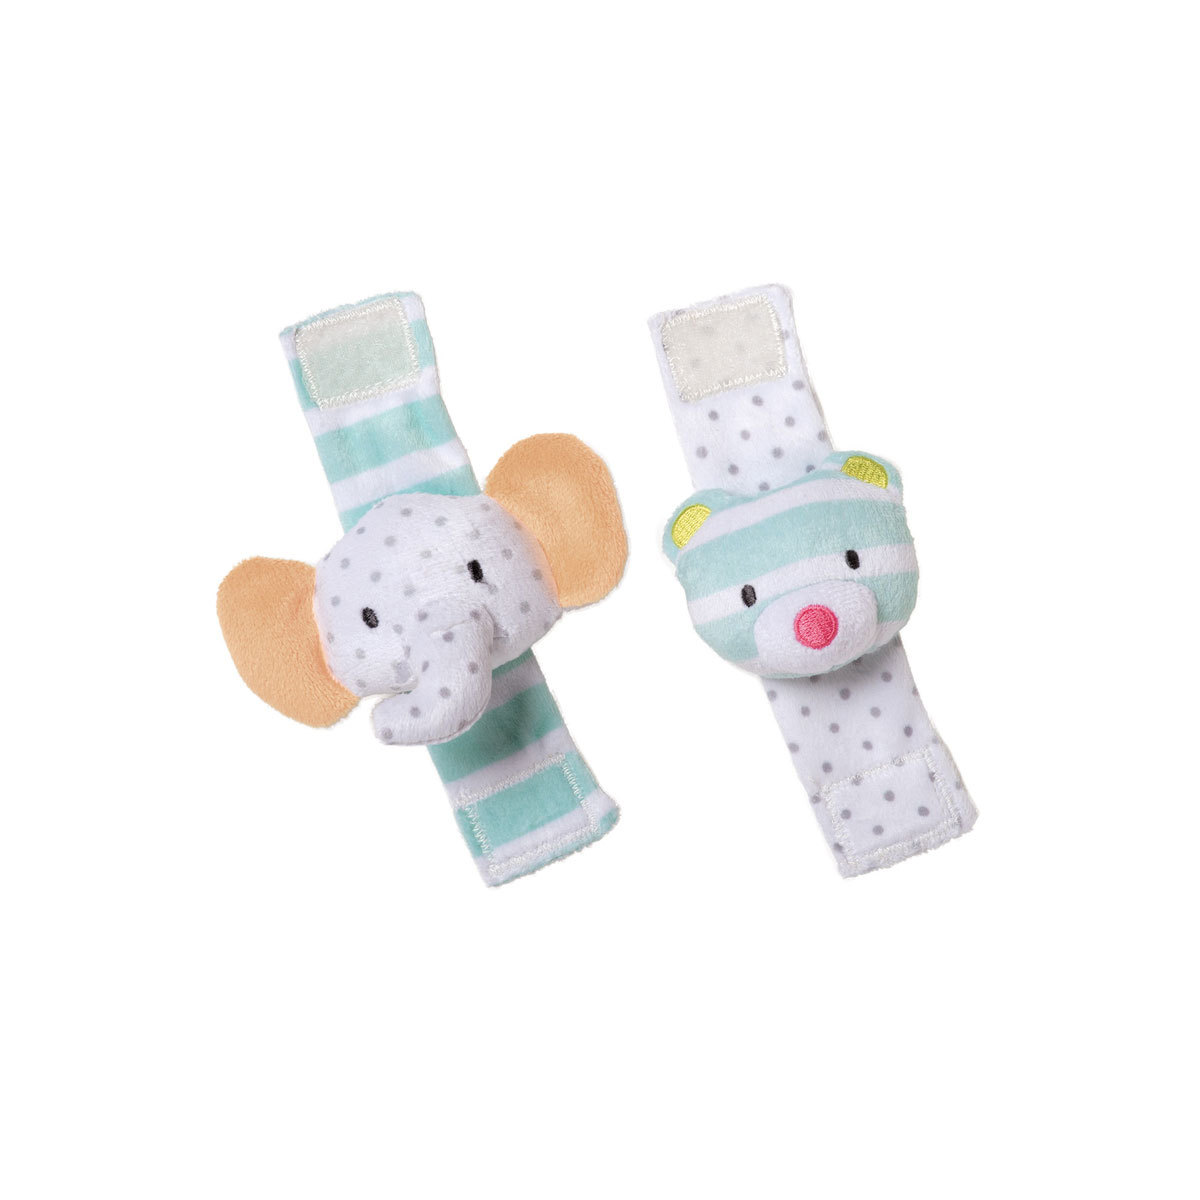 Hochet Hochets Playtime Plush Scratch Hochets Playtime Plush Scratch